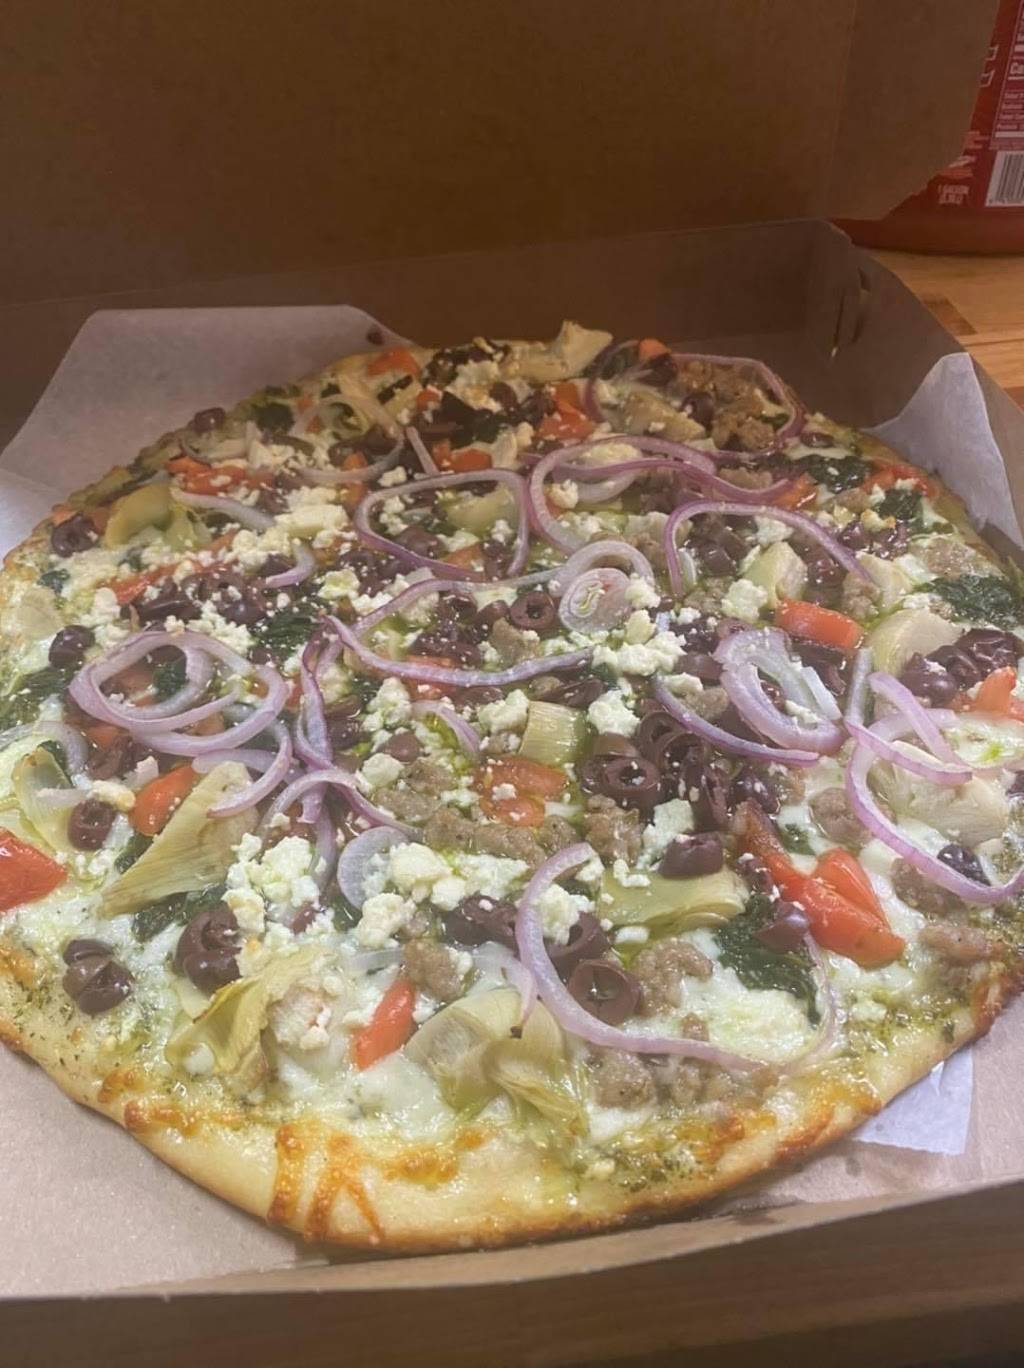 My Sisters Pizza | restaurant | 6 Union St, Winthrop, ME 04364, USA | 2073955006 OR +1 207-395-5006